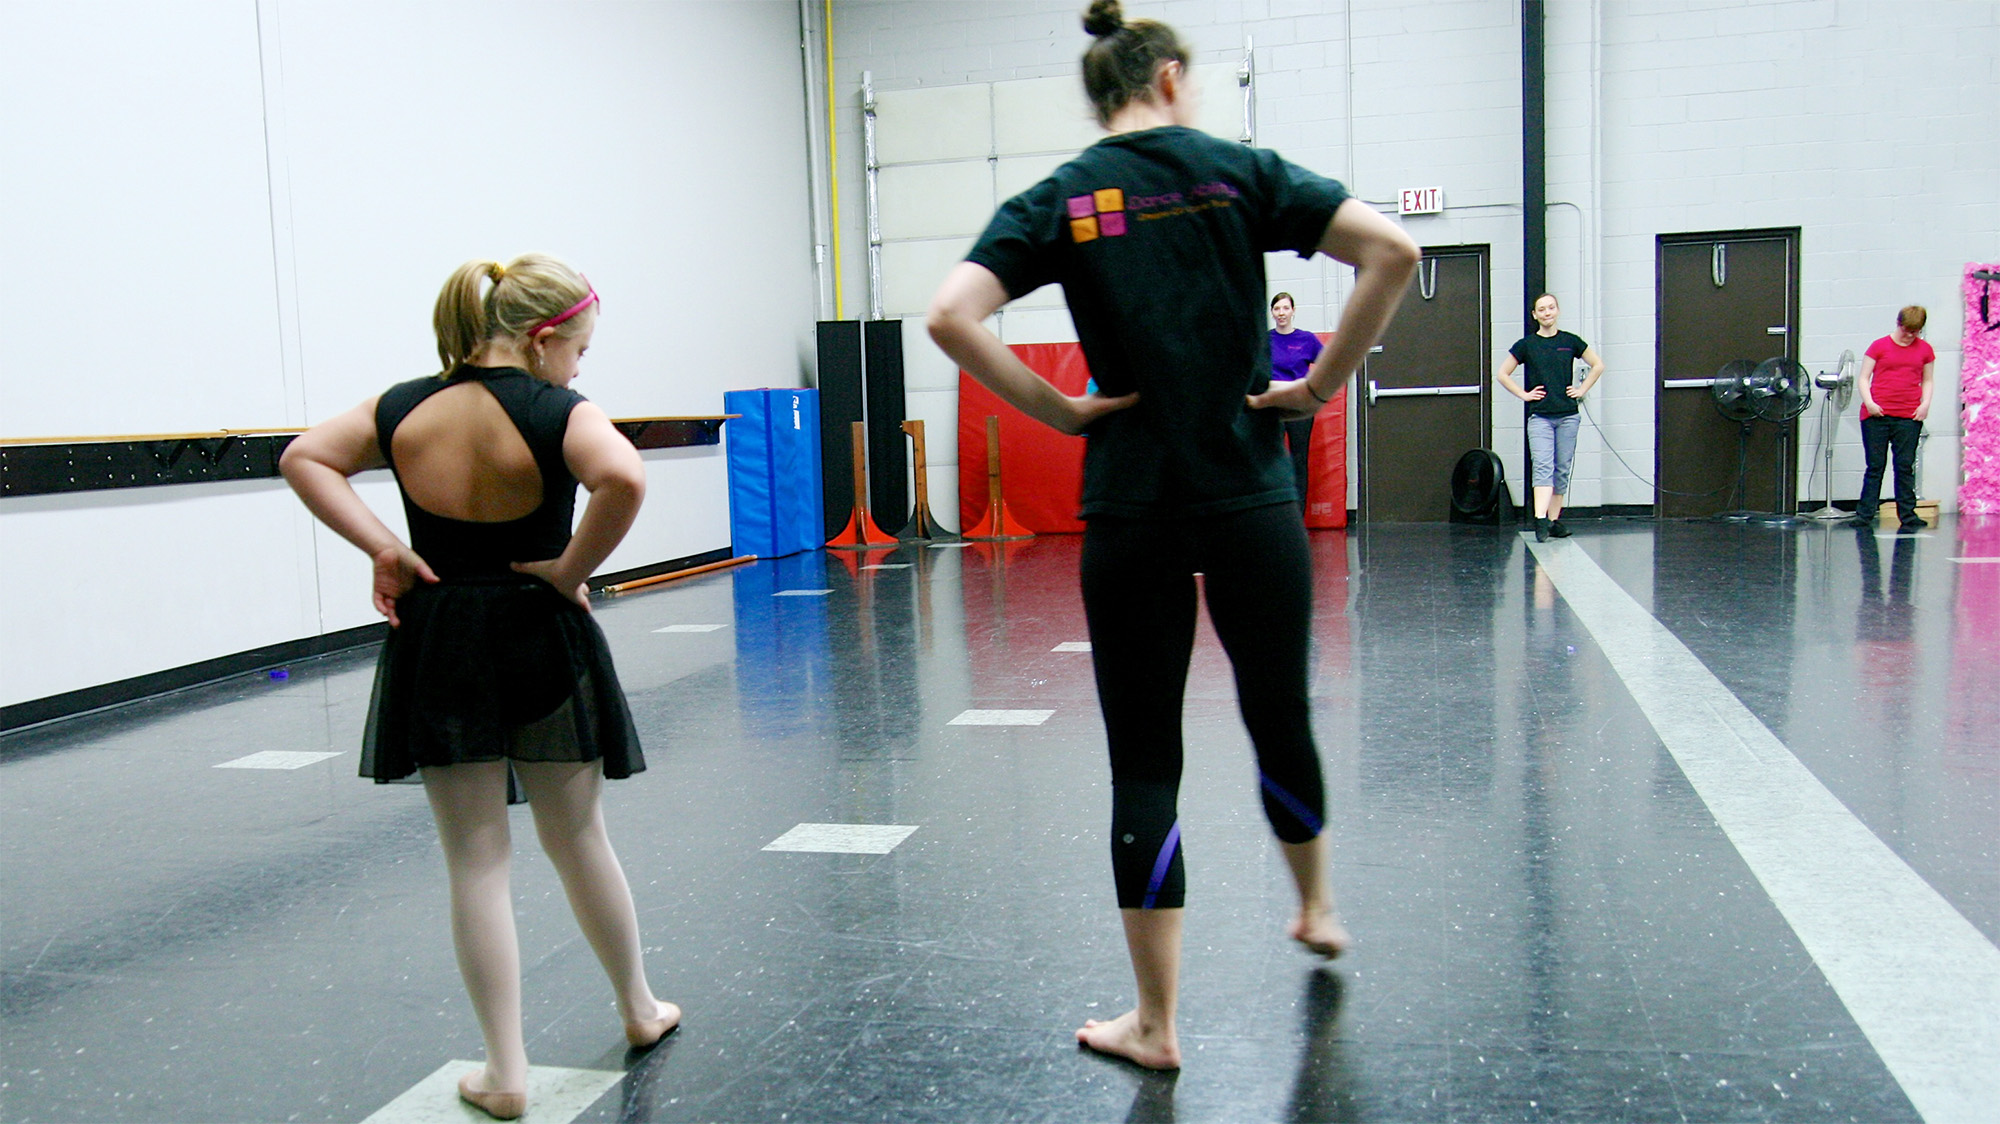 rear shot of two dancers practicing